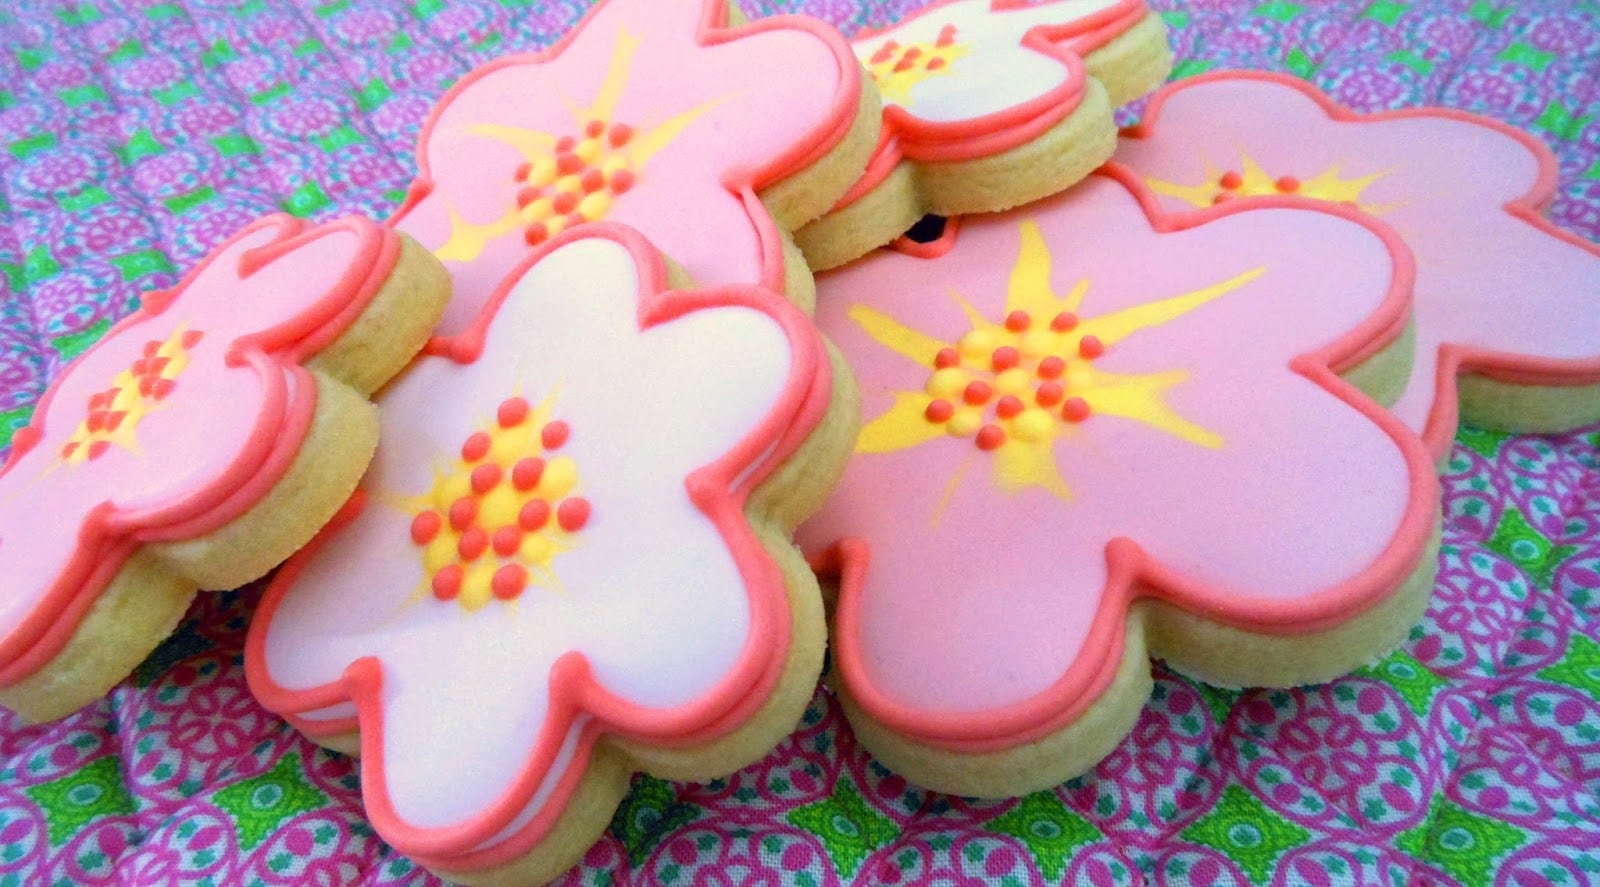 Shortbread Cookies With Icing